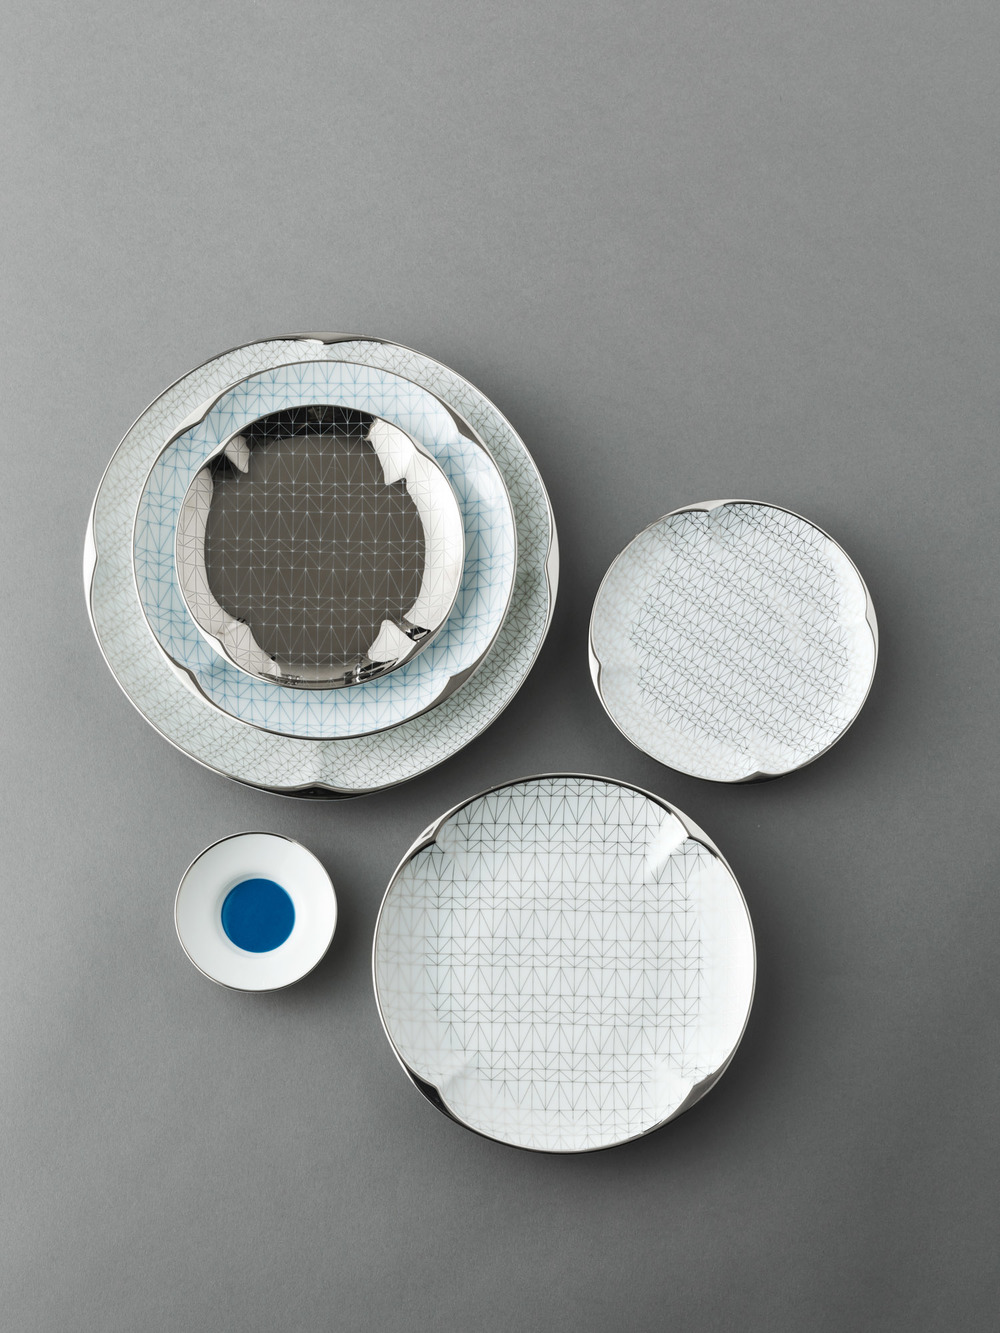 lattice dinnerware for tzelan: collaboration with Peter Ting for his Ruyi Collection, 2013